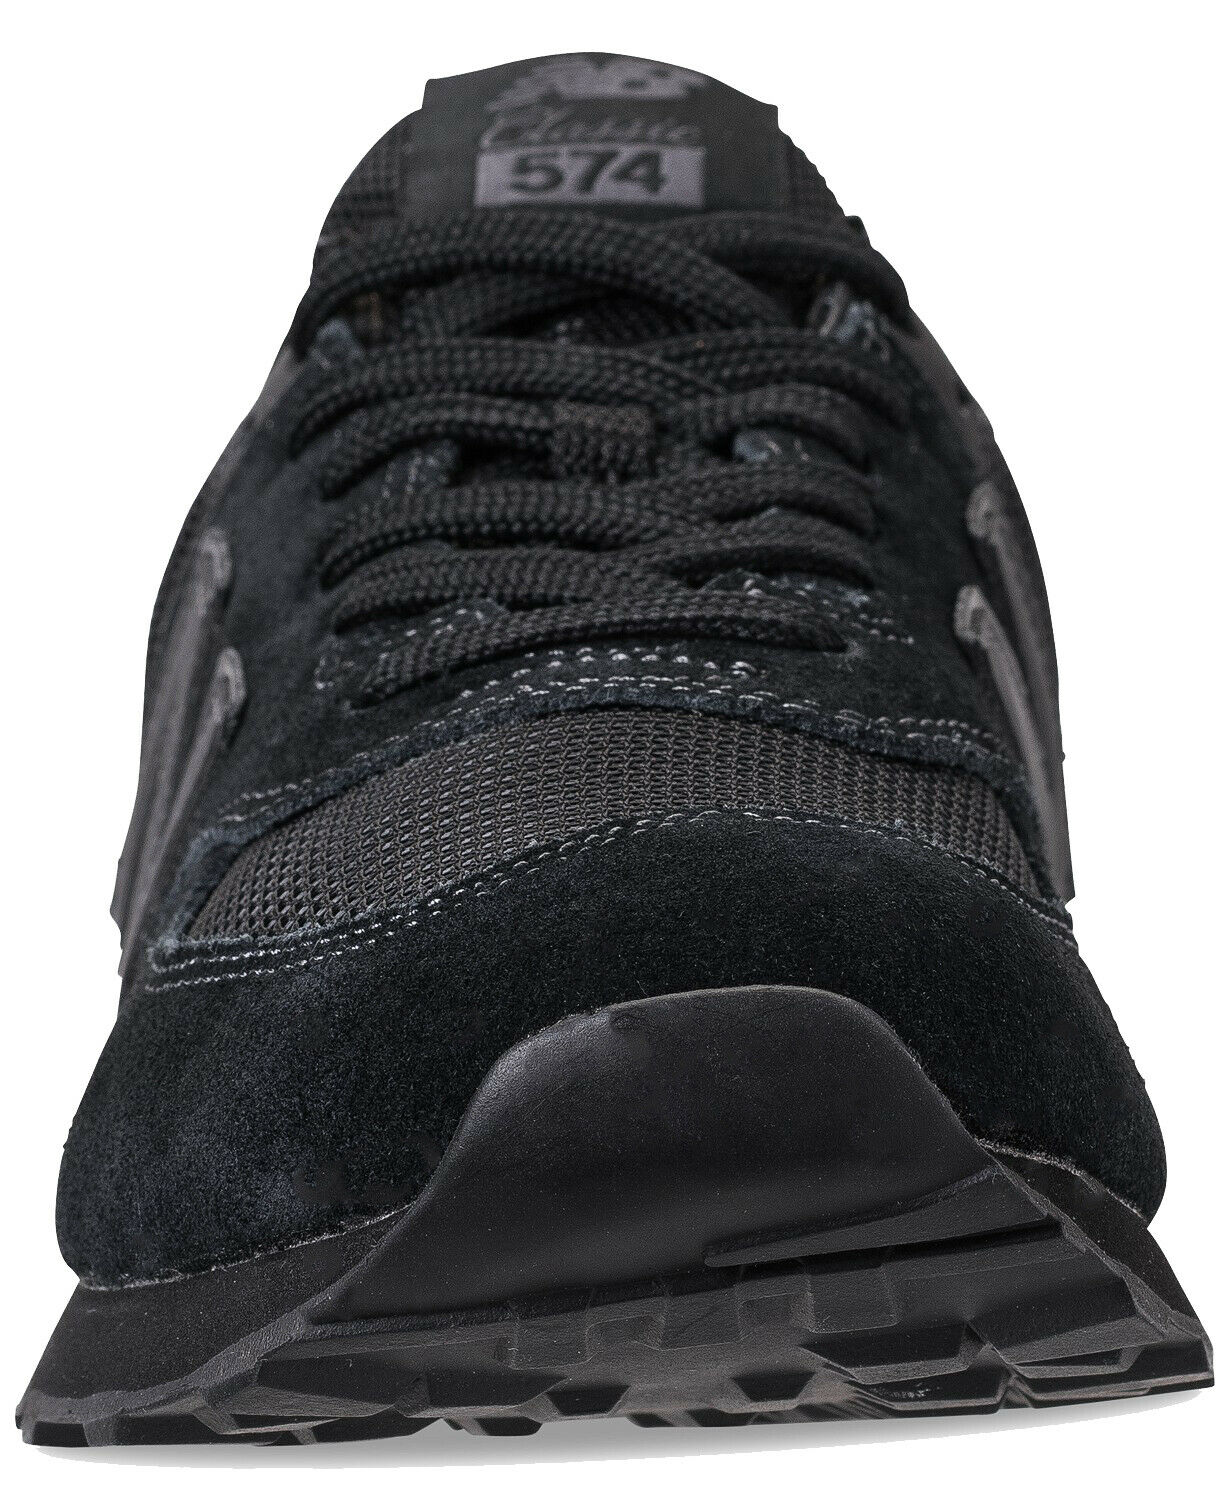 Casual shoes Sporting 574 Men's Balance New 3b6f4gzxp8183